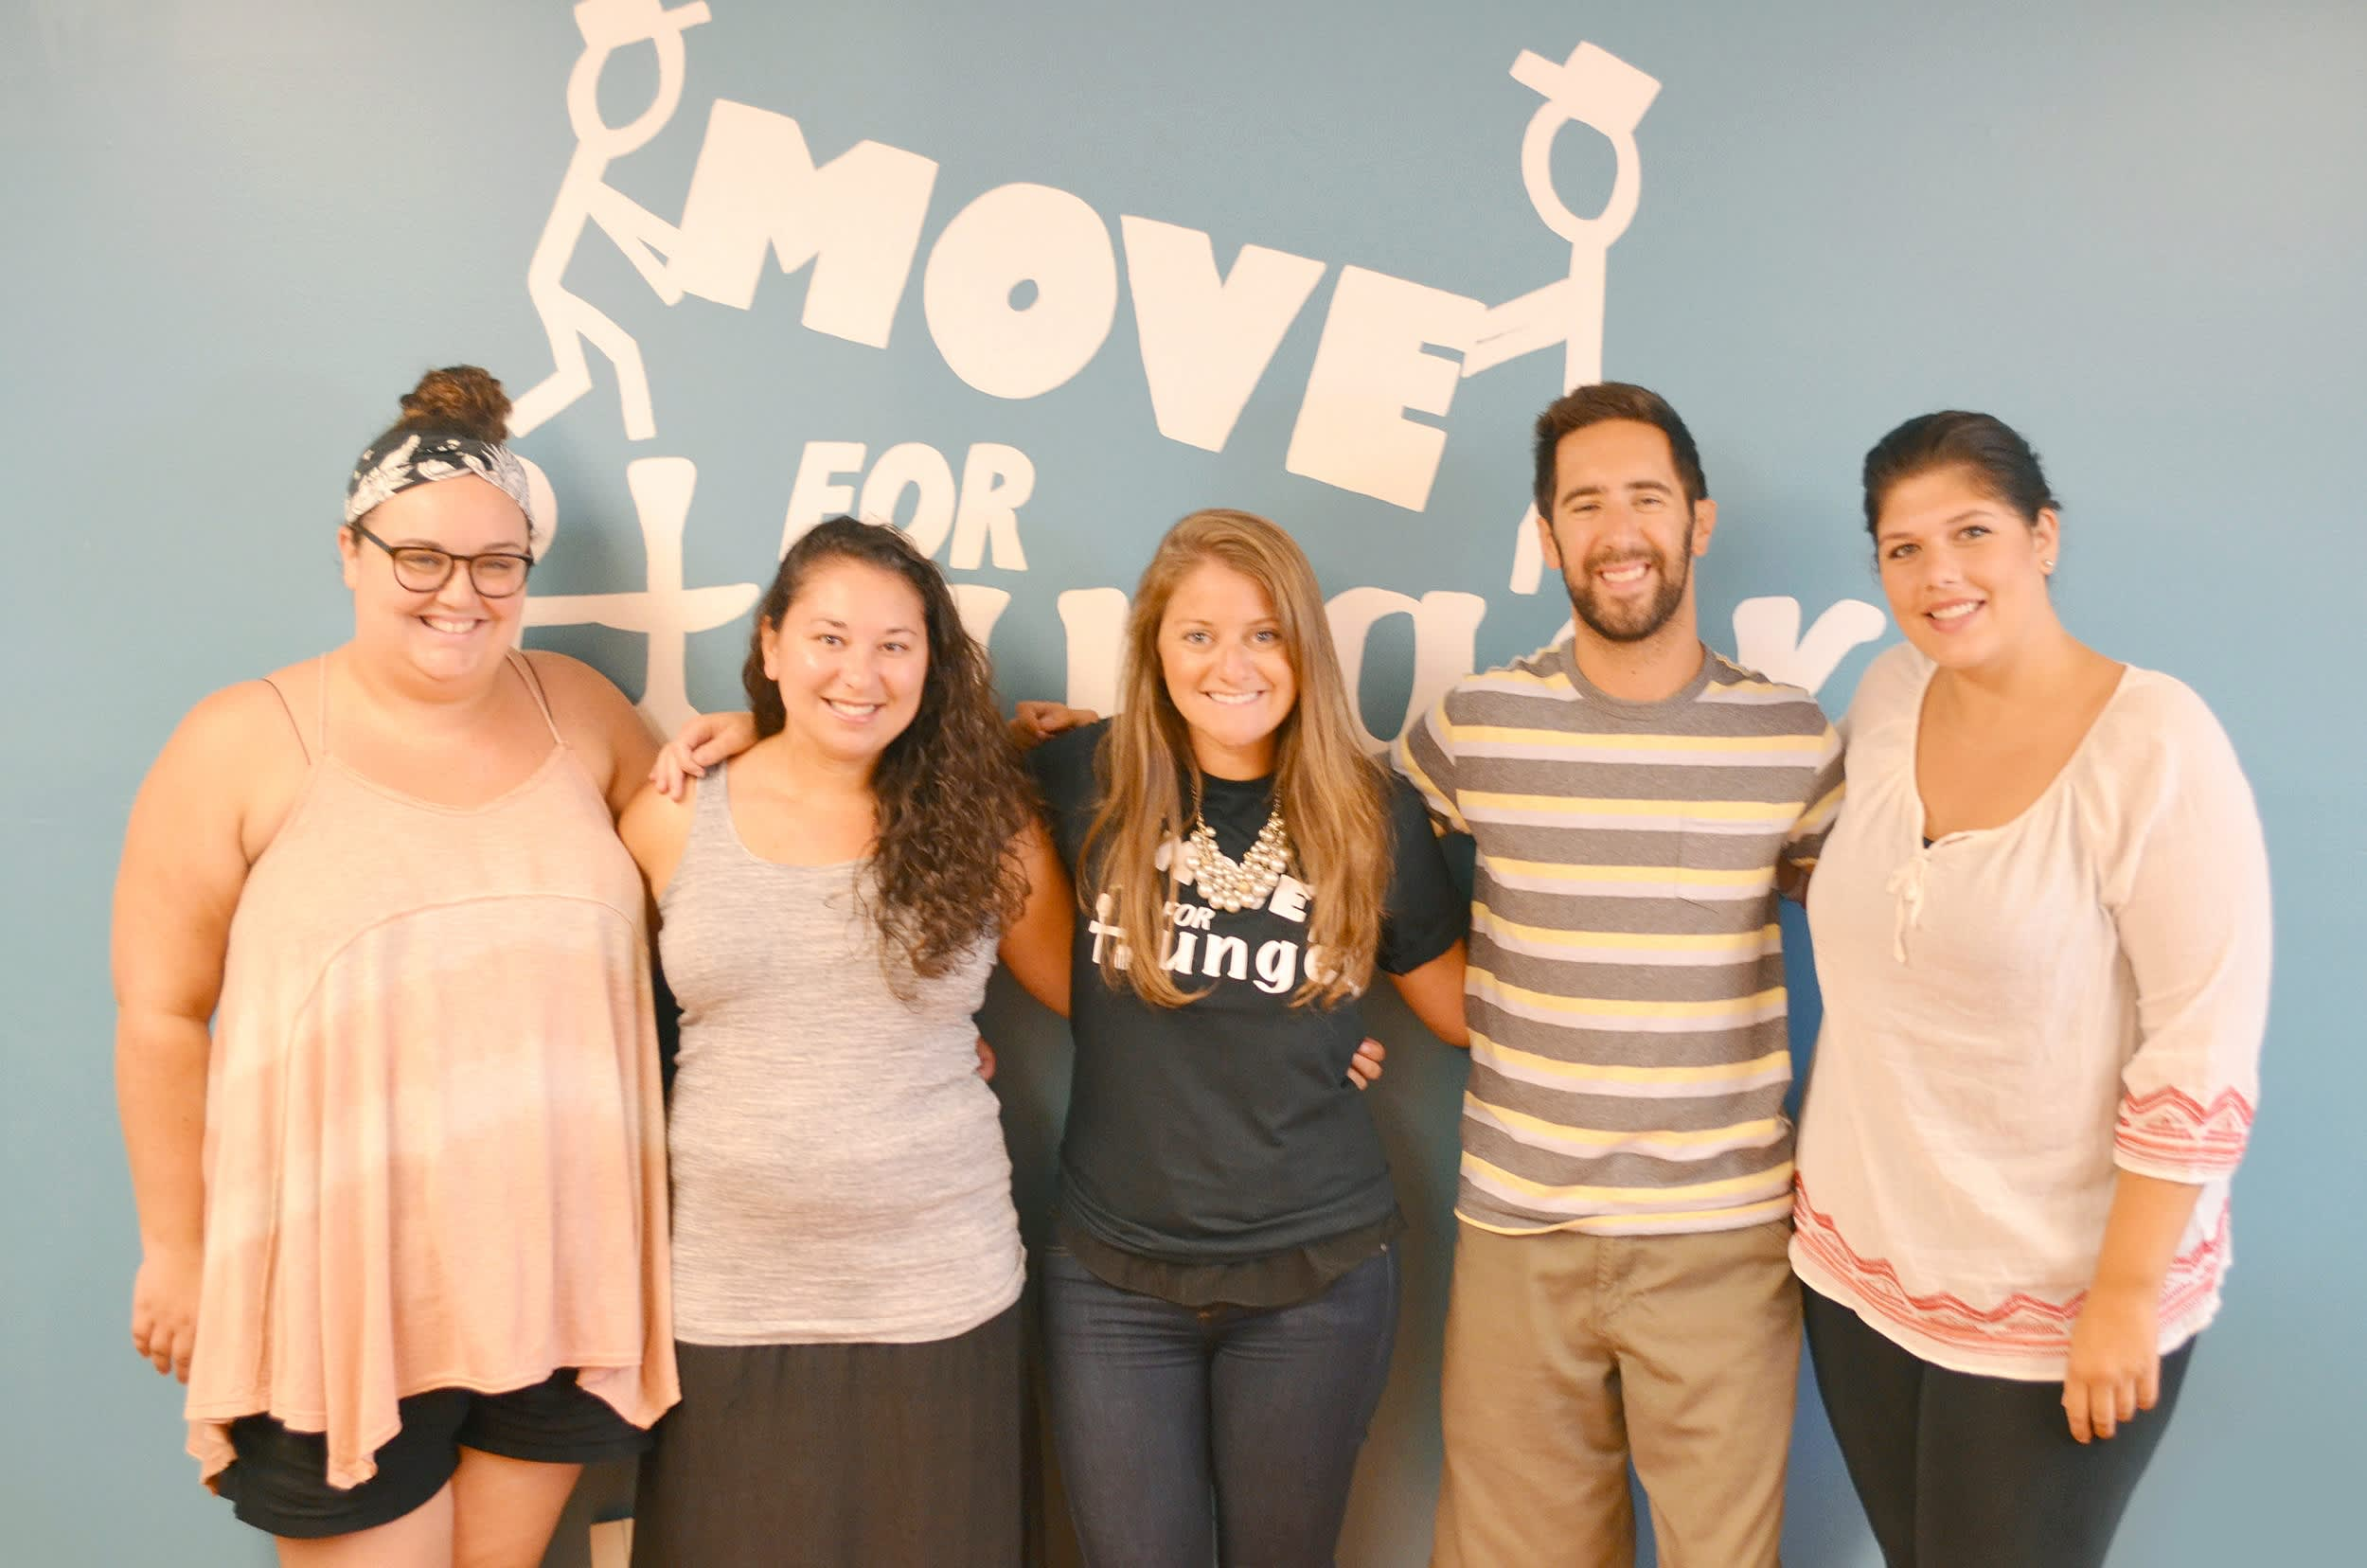 Jenna Weinerman Joins Move For Hunger Board of Directors